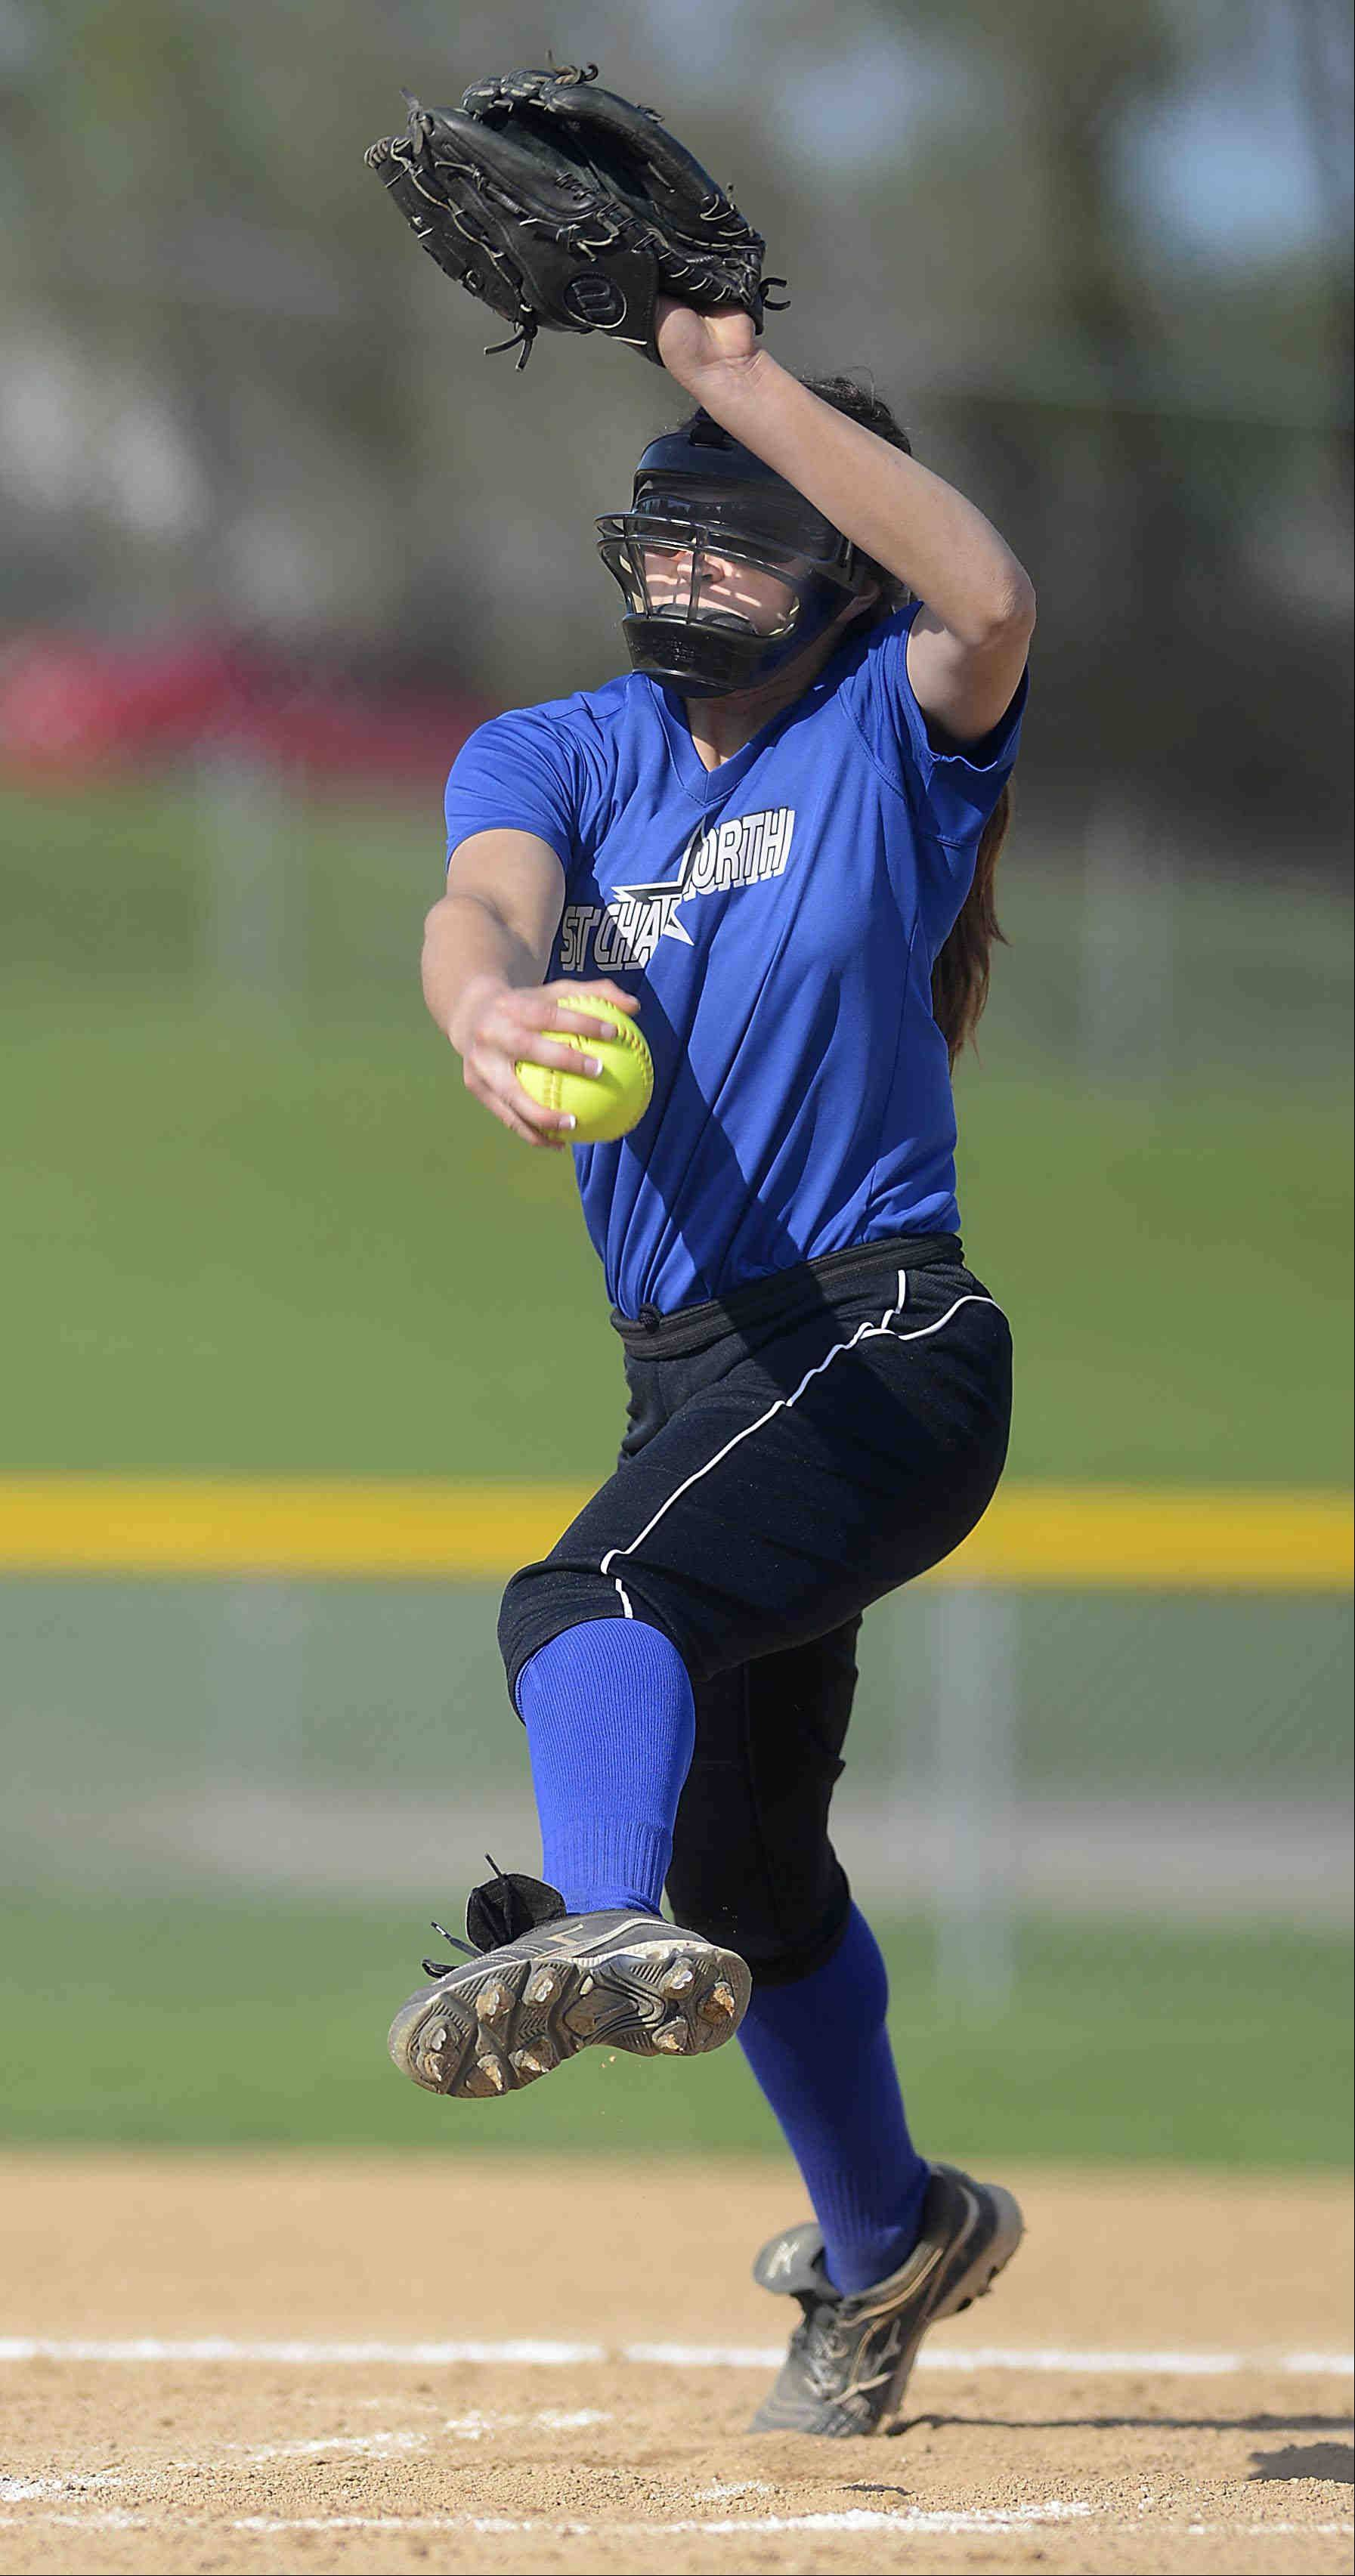 St. Charles North starting pitcher Sabrina Rabin throws against Elgin Tuesday in Elgin.